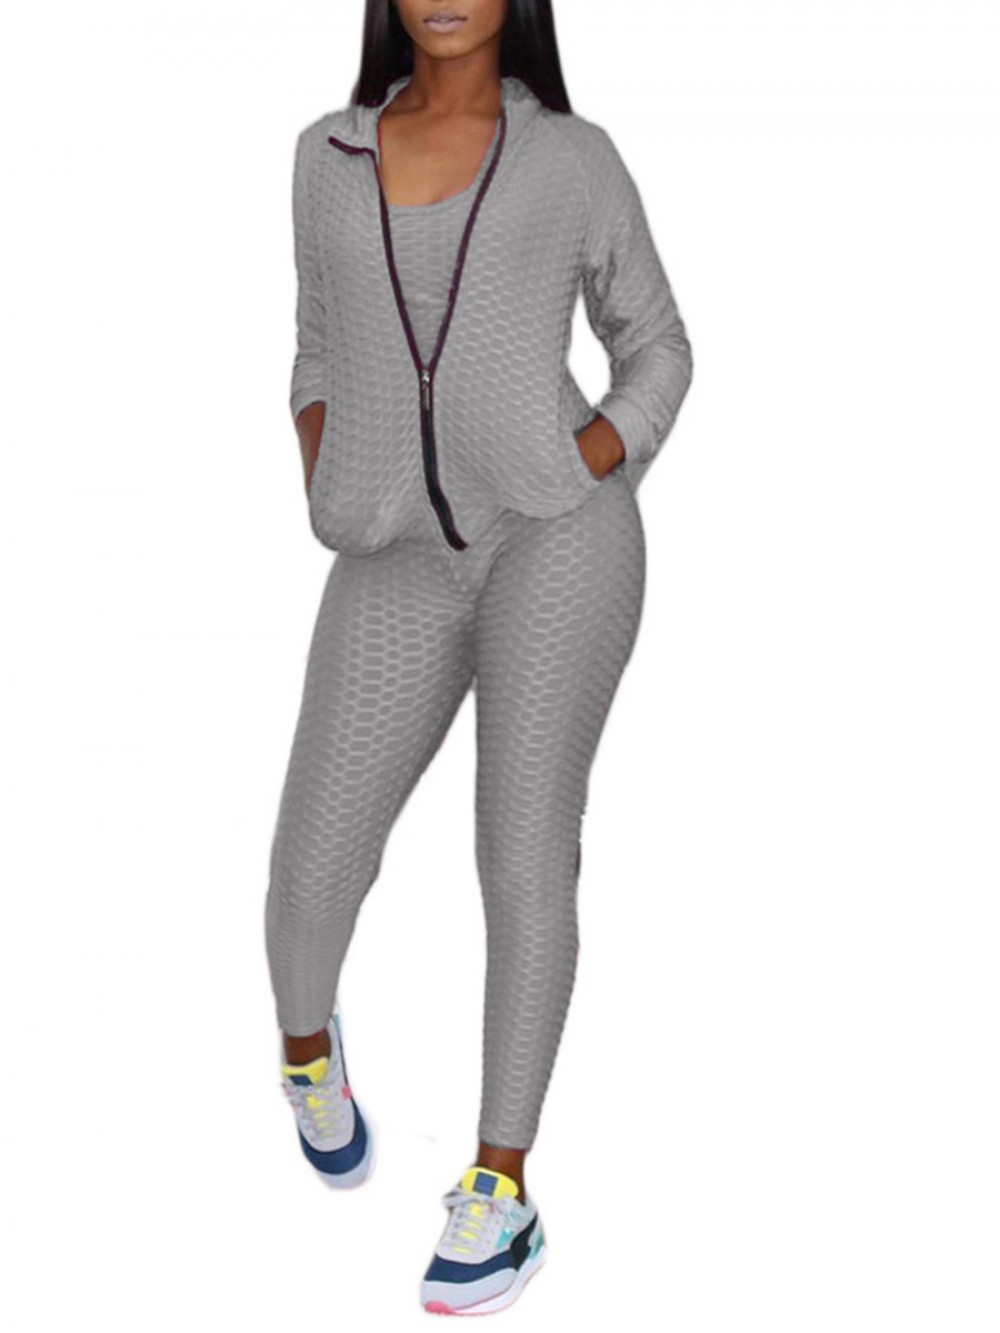 Gray Side Pockets Sweat Suit Jacquard Weave For Holiday